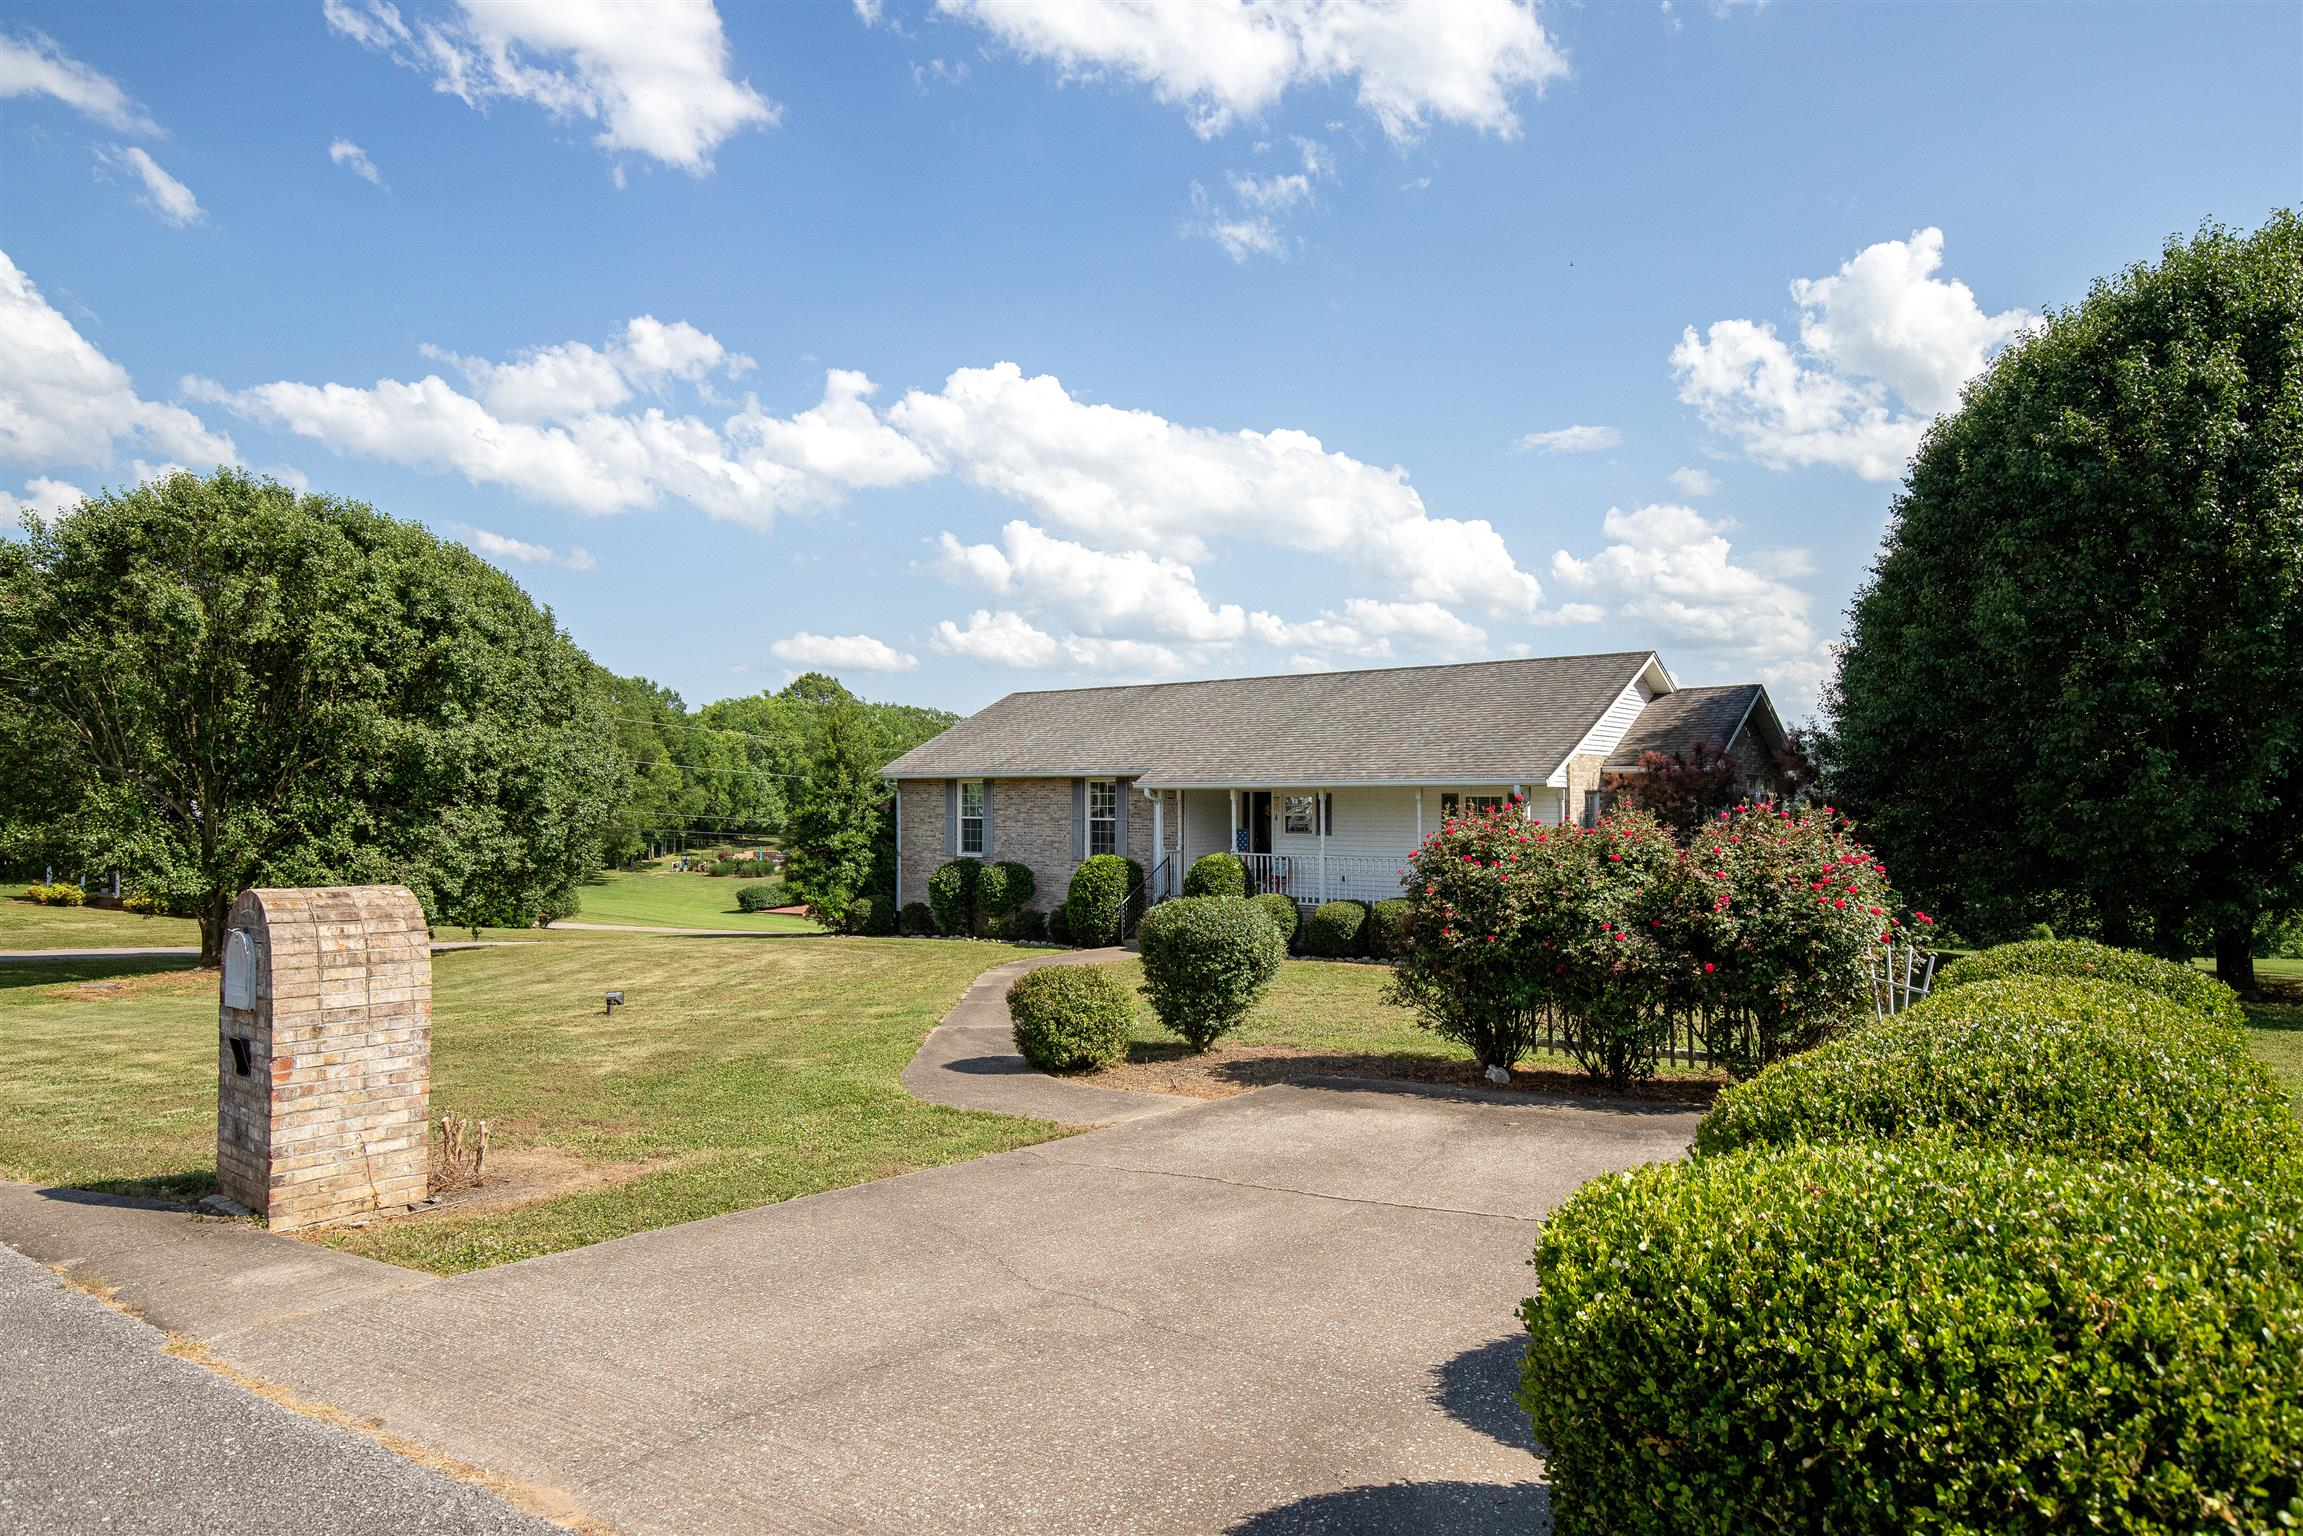 79 Morris Dr, Carthage, TN 37030 - Carthage, TN real estate listing